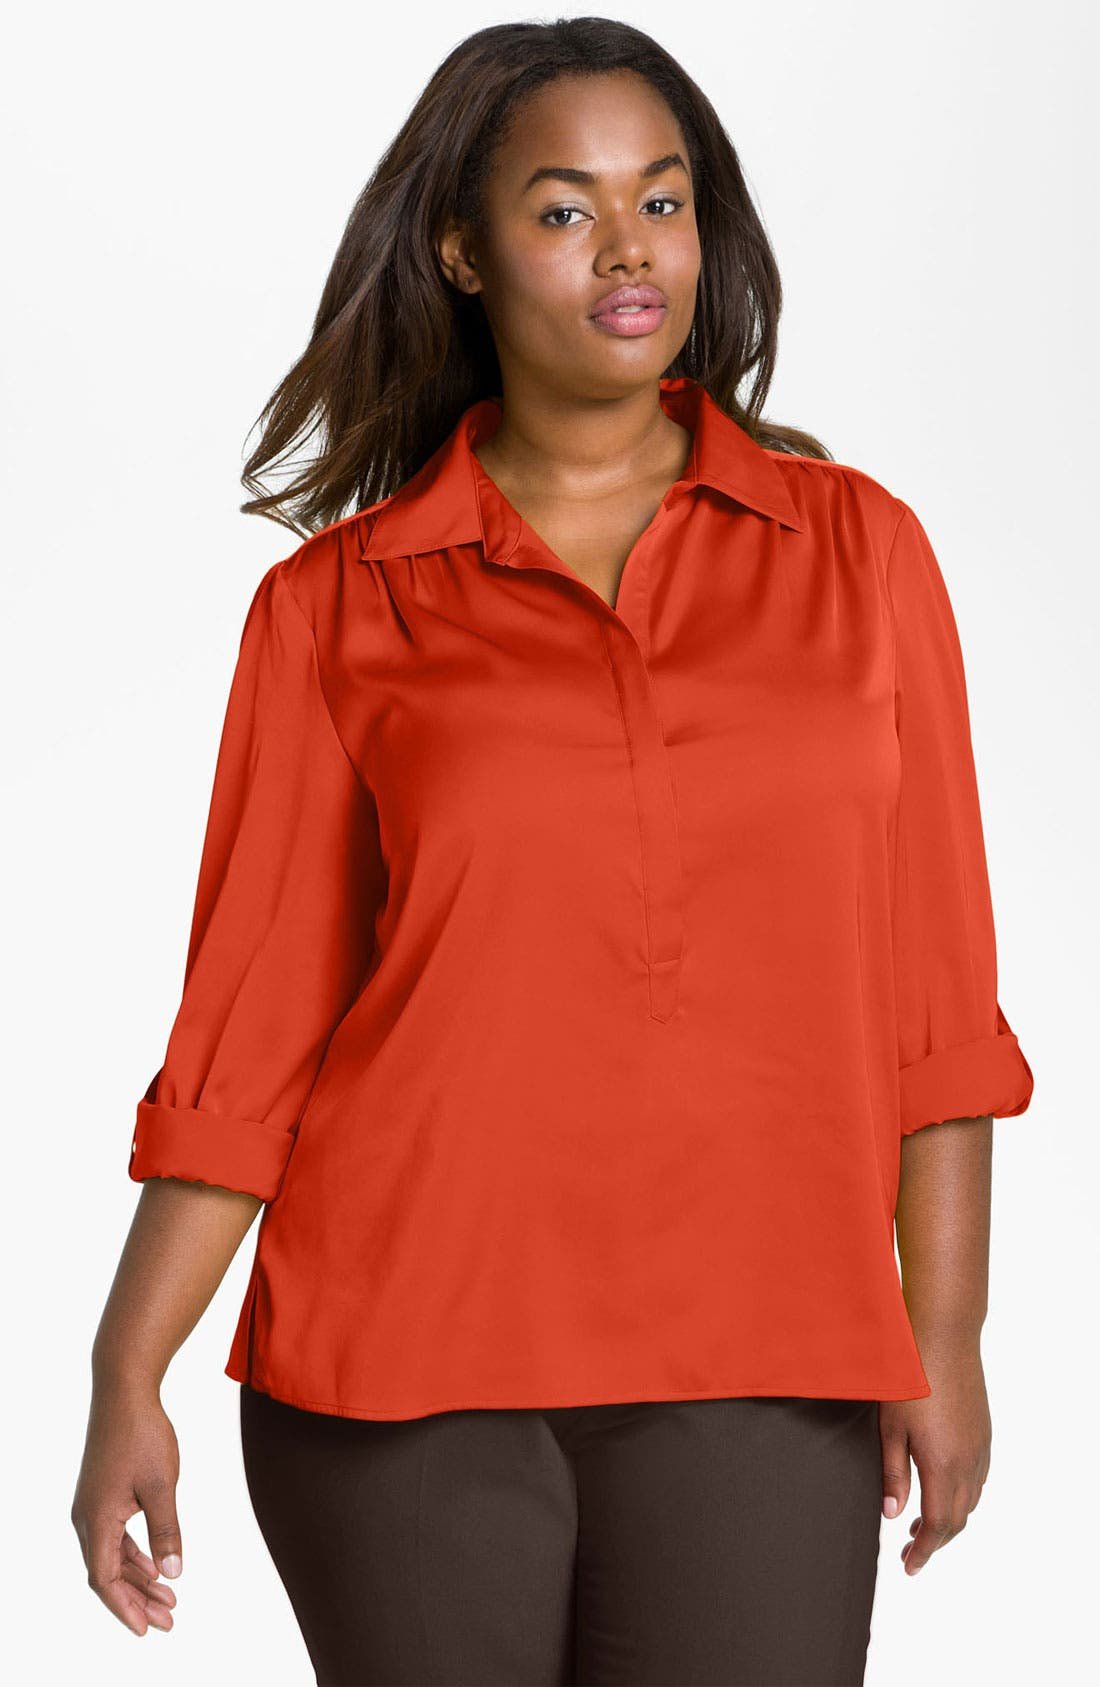 Alternate Image 1 Selected - Vince Camuto Roll Sleeve Top (Plus)